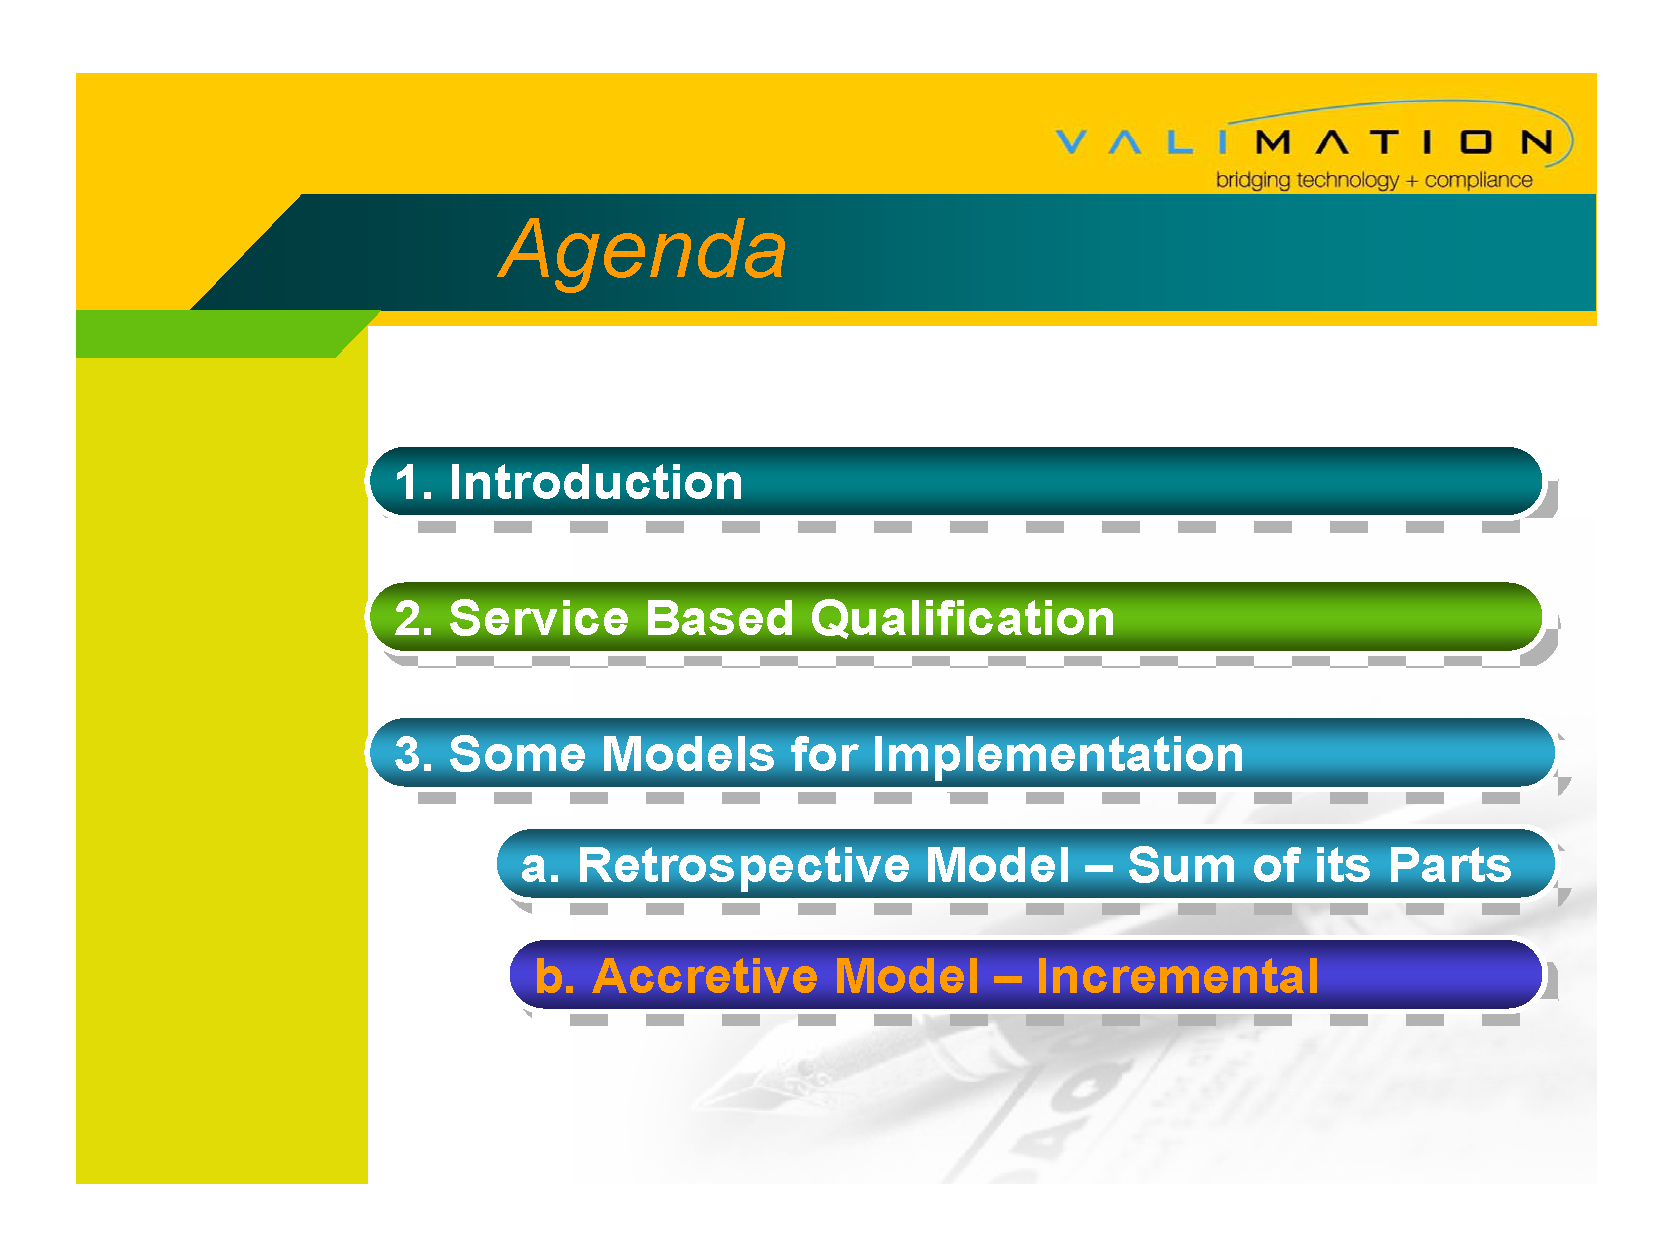 Network Qualification - Accretive Model By ValiMation_Page_21.png